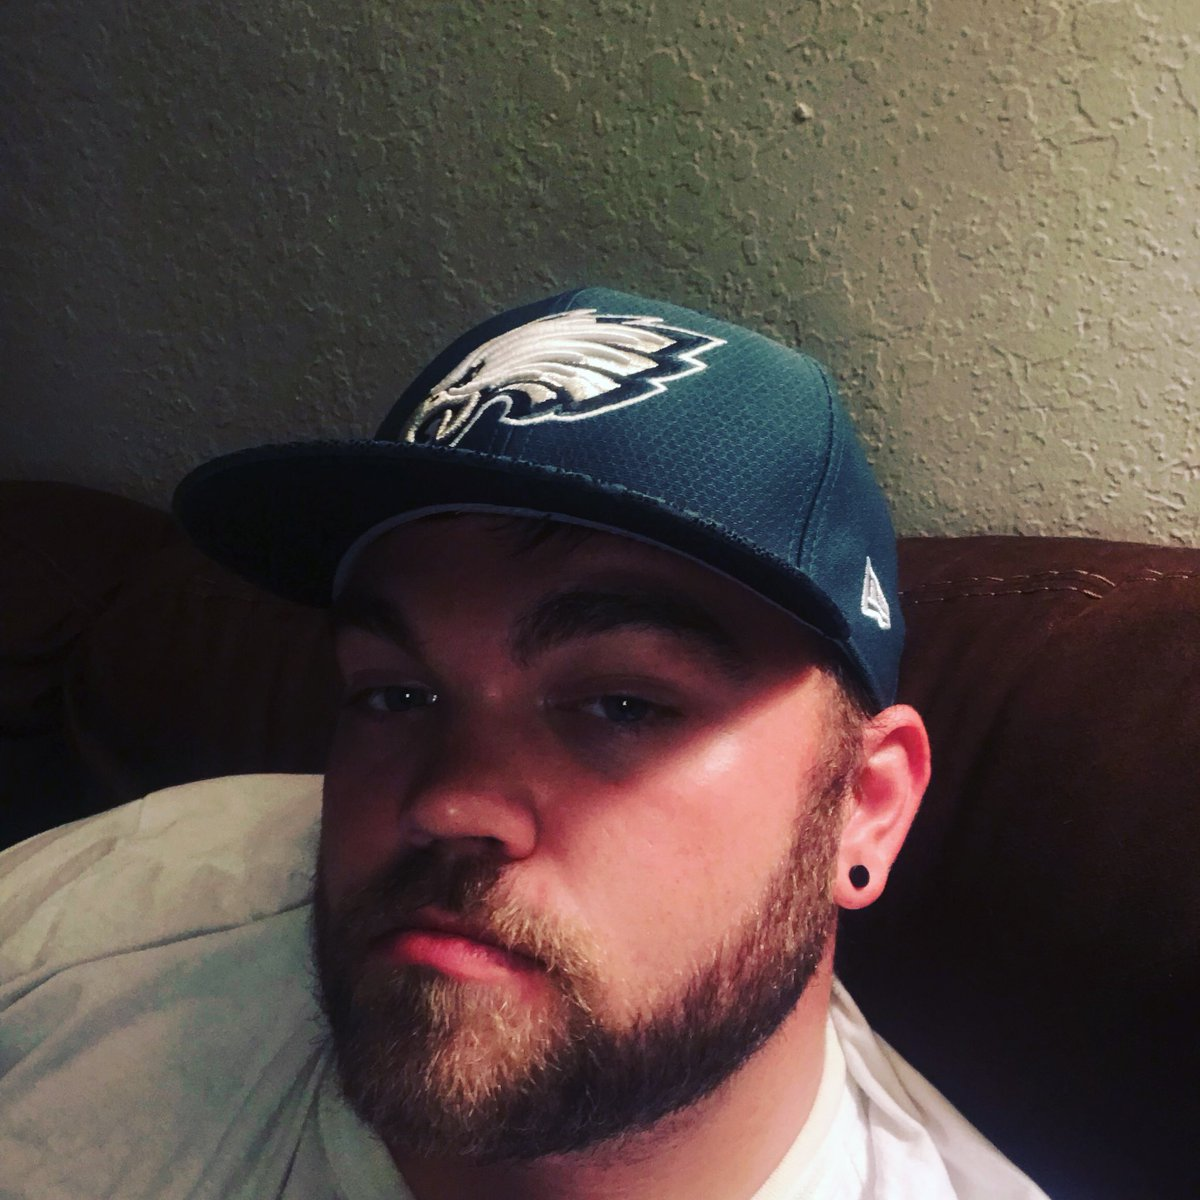 New hat for #TNF #PHIvsCAR #FlyEagelsFly #BeastintheEast https://t.co/IO2ObvB4AN